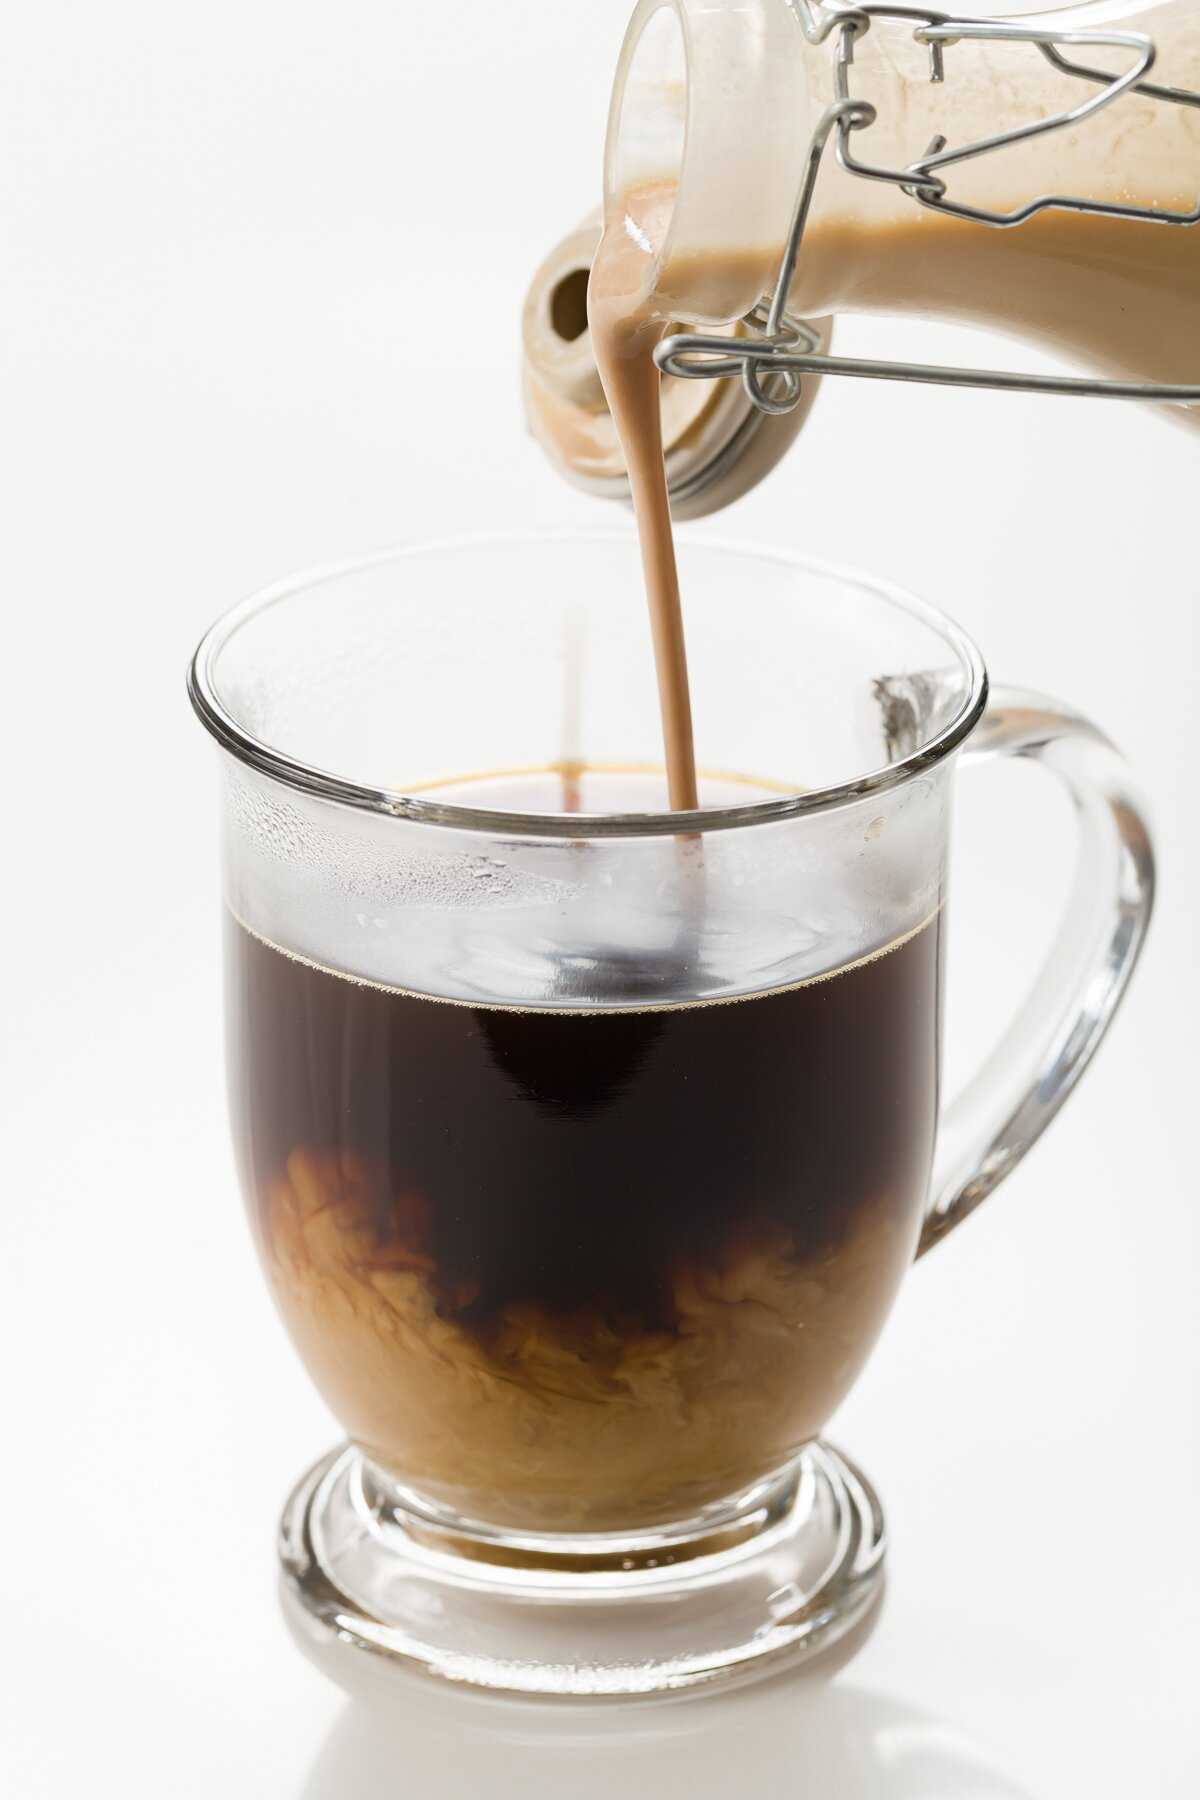 tight shot of homemade Baileys being poured into hot coffee